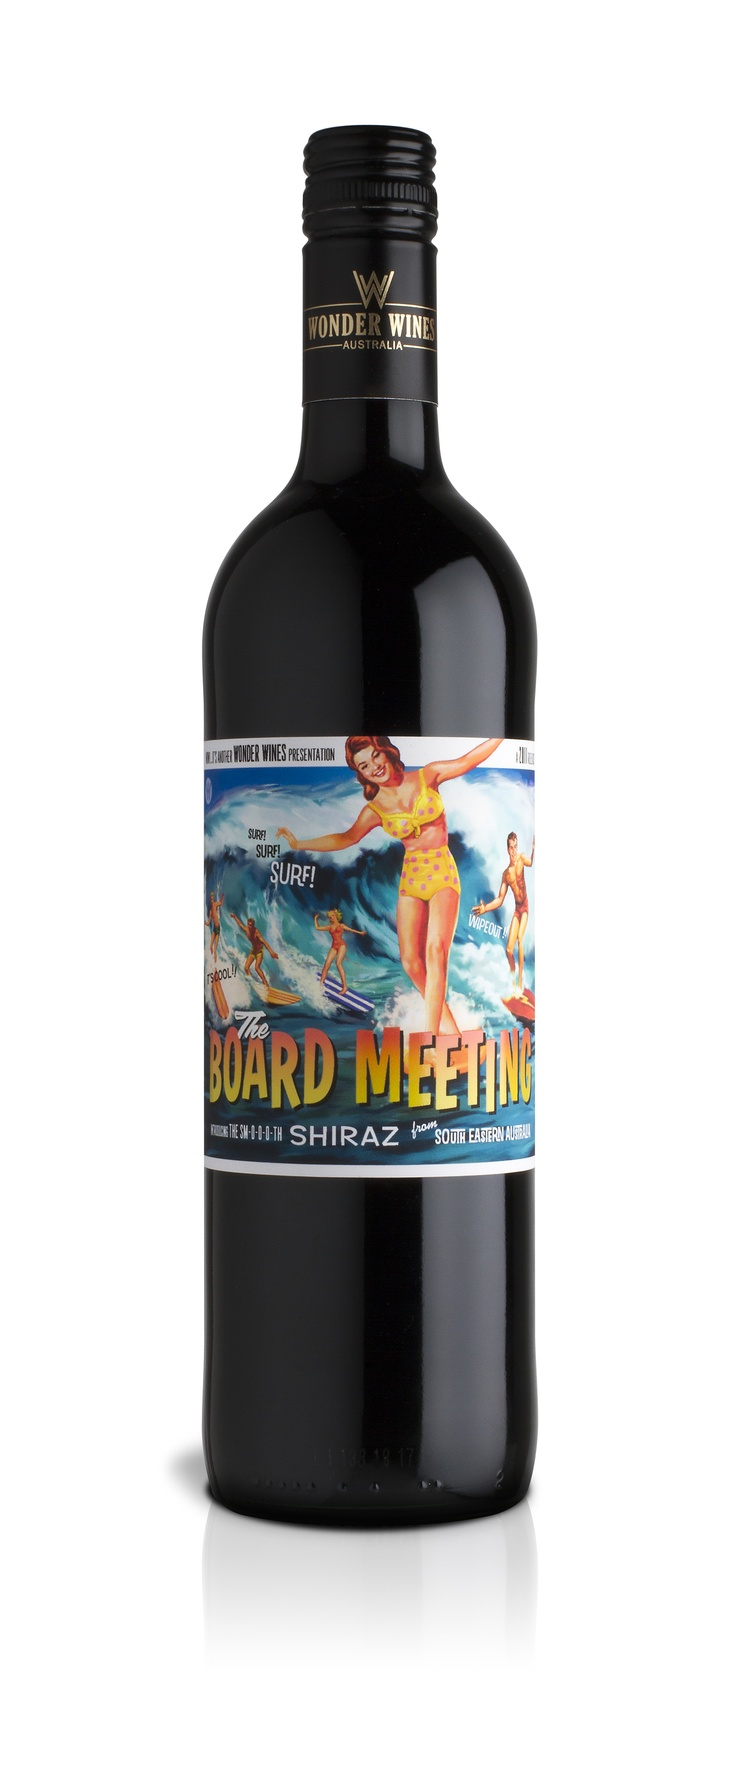 THE BOARD MEETING Shiraz has aromas of dark forest fruits with flavours of juicy plum, subtle spice and toasty oak! #Wine